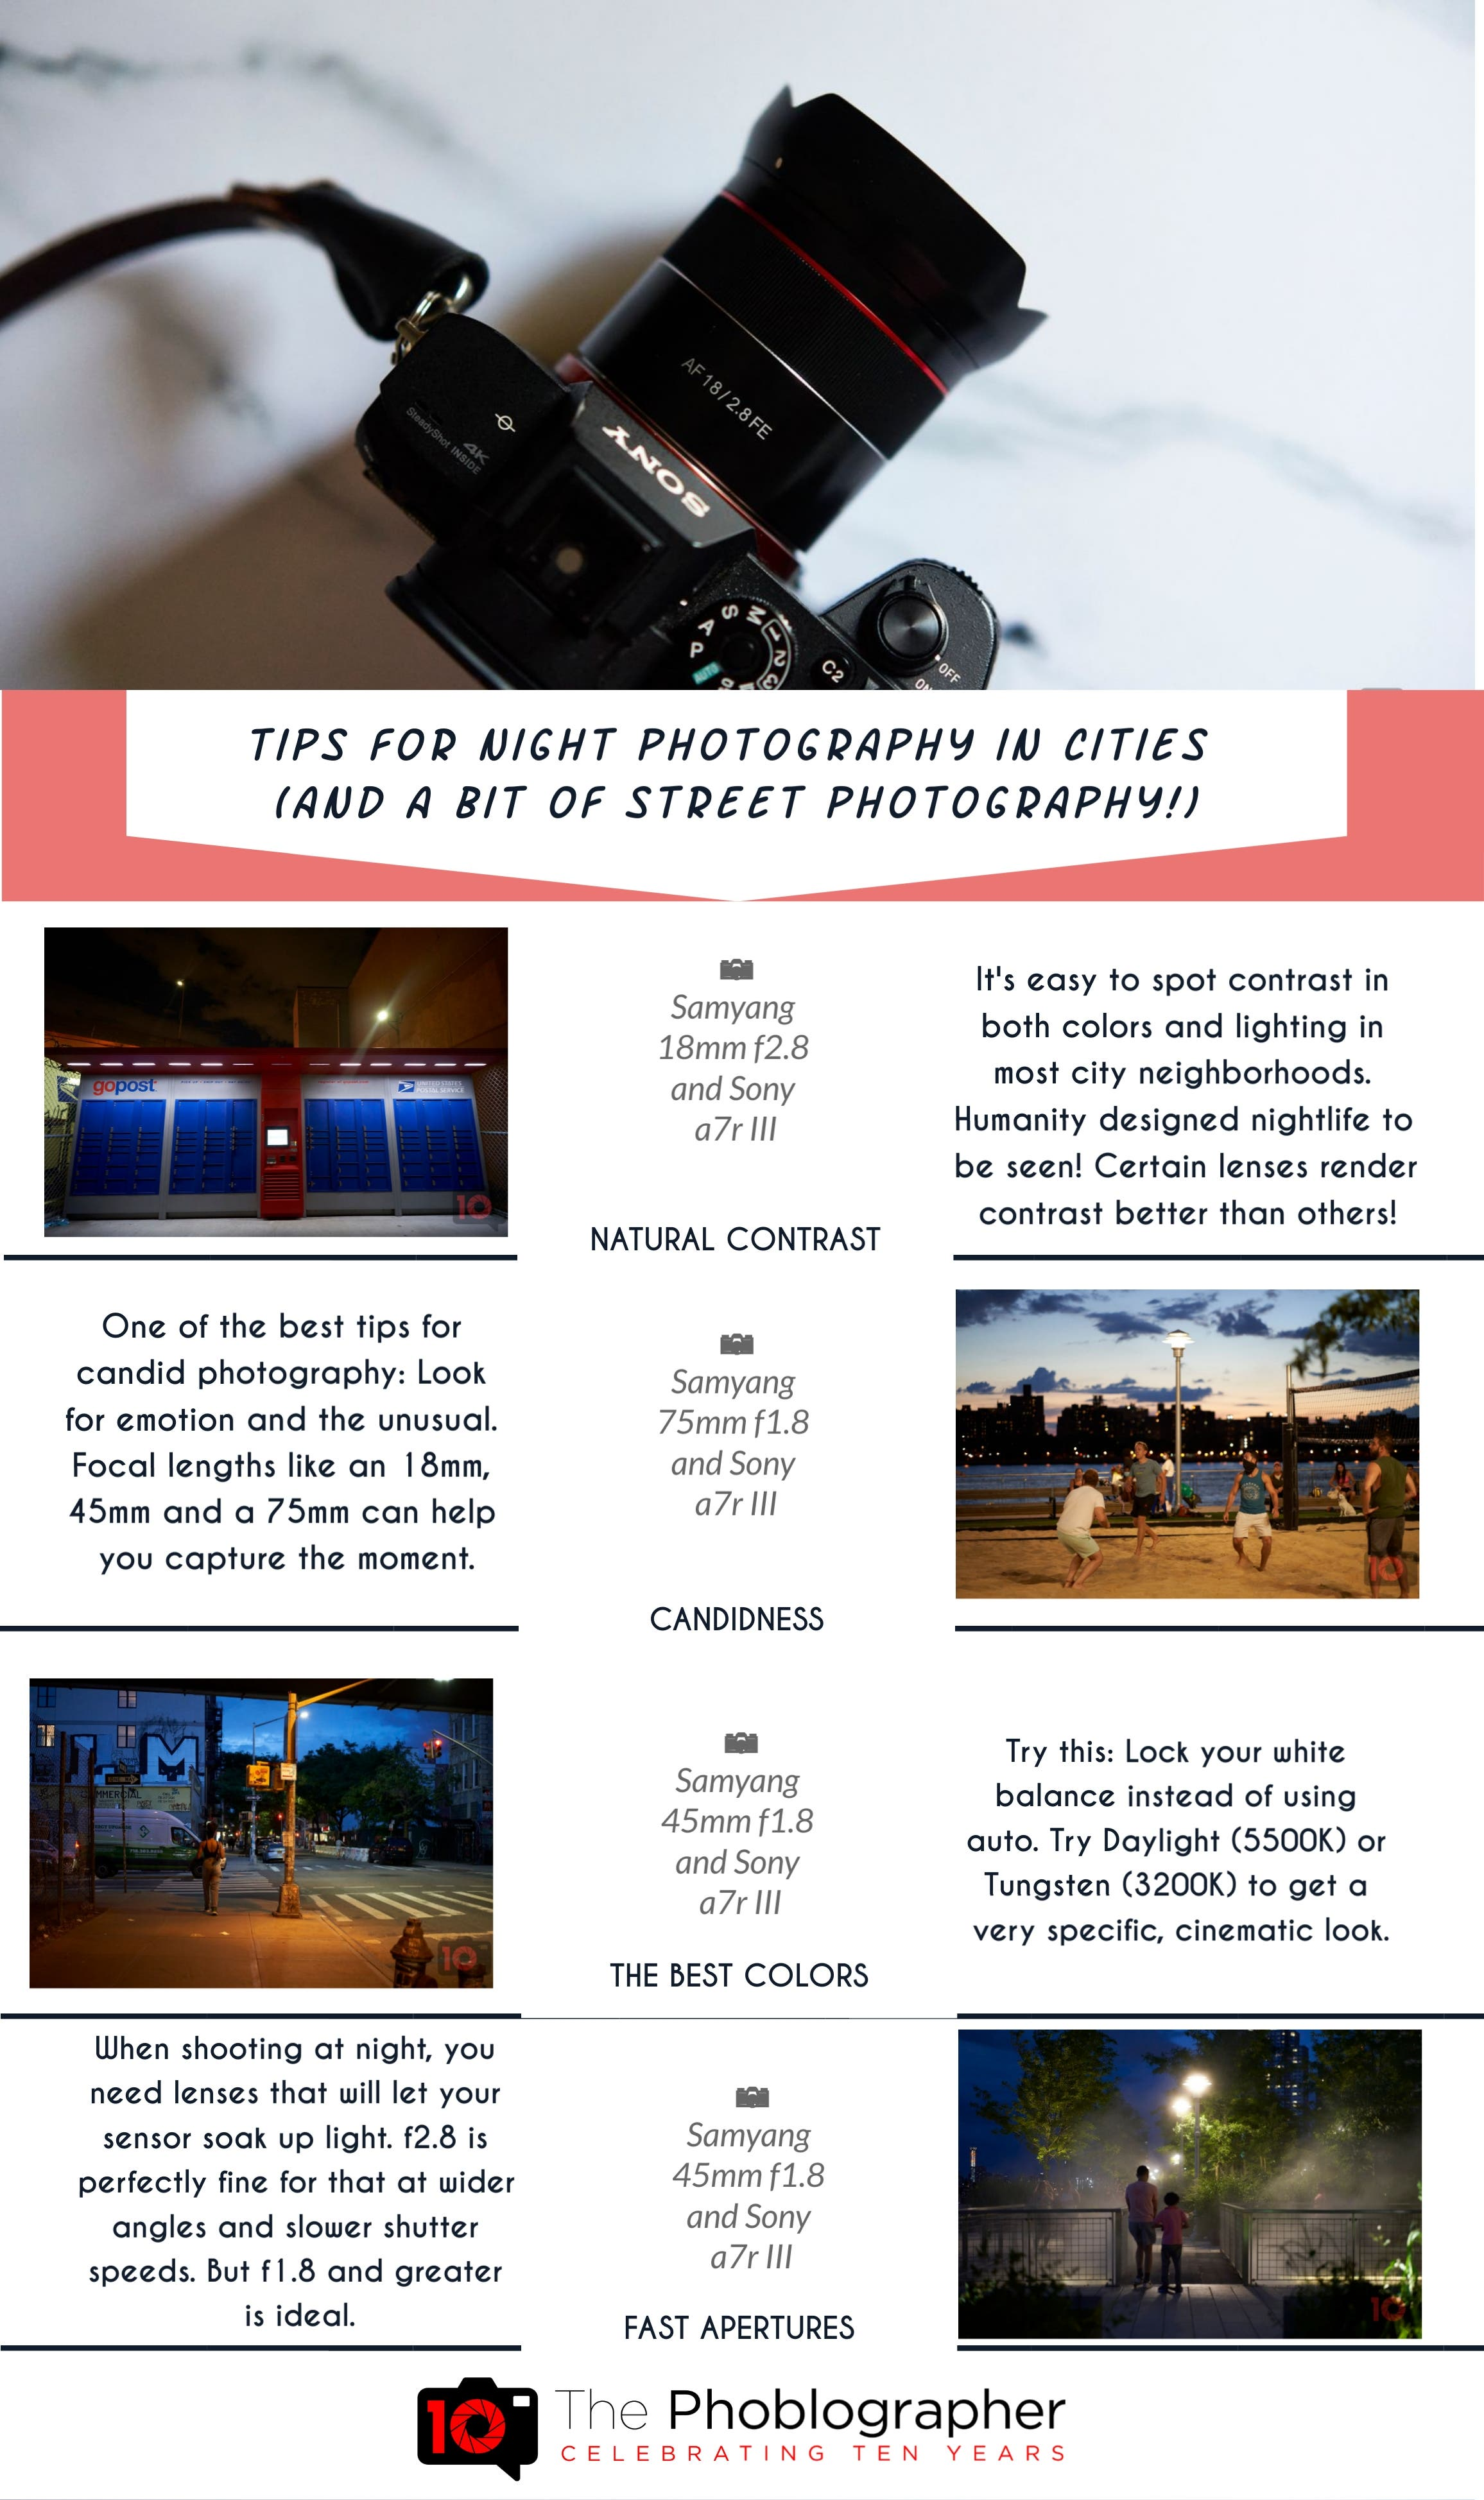 How to Shoot Better Photos in Cities at Night (And Some Street Tips)